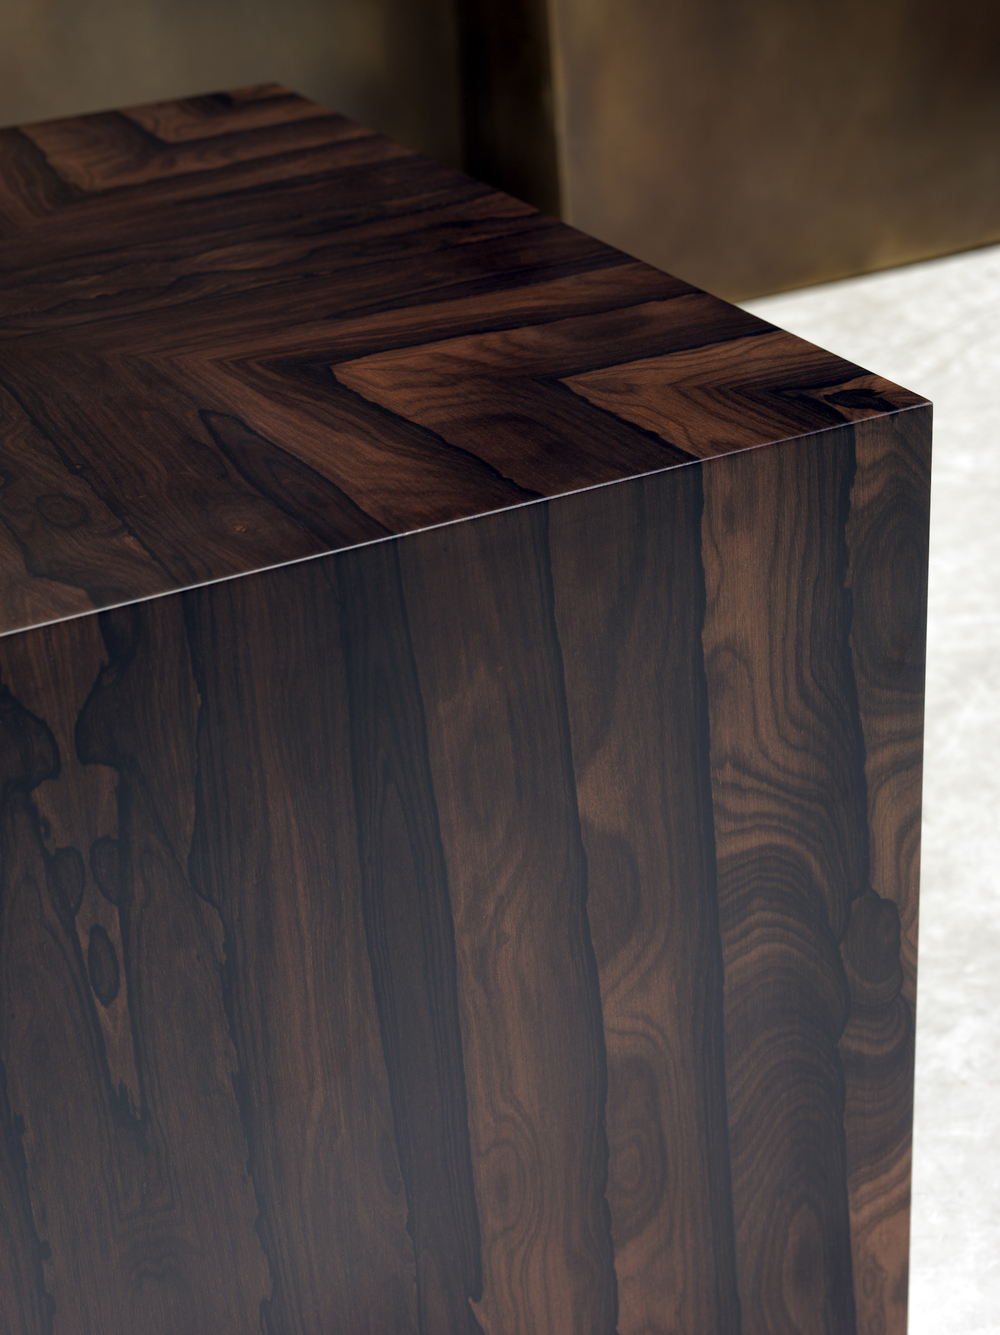 Beautifully crafted wood furniture by Greg Markley Furniture Limited.